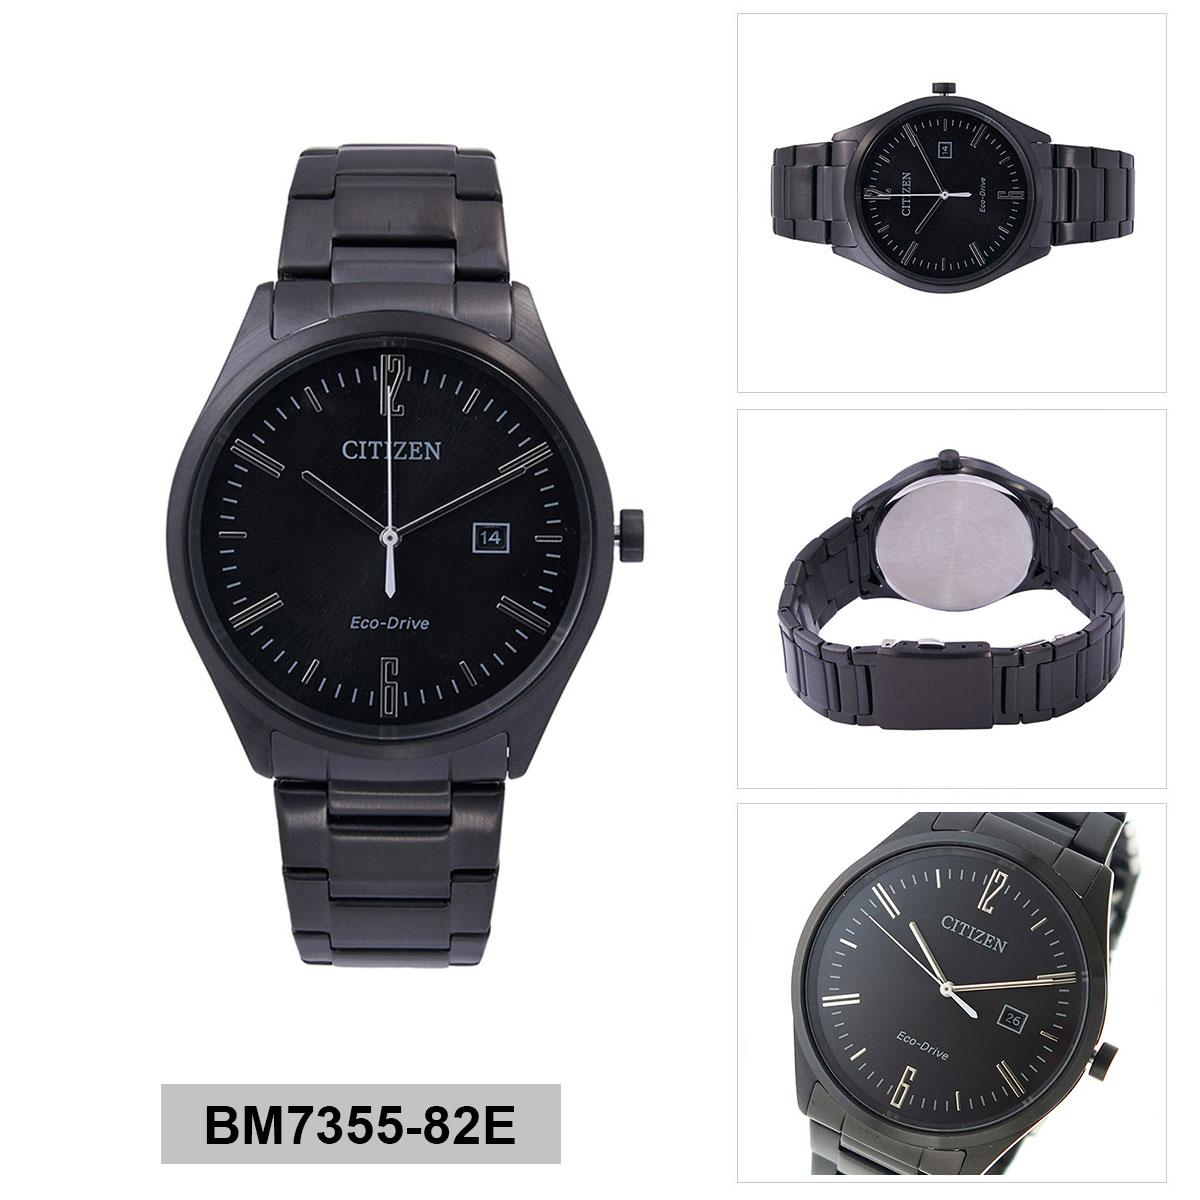 Buy Sell Cheapest Gpl Citizen Eco Best Quality Product Deals Ca4336 85e Drive Black Stainless Steel Case Bracelet Mens Nwt